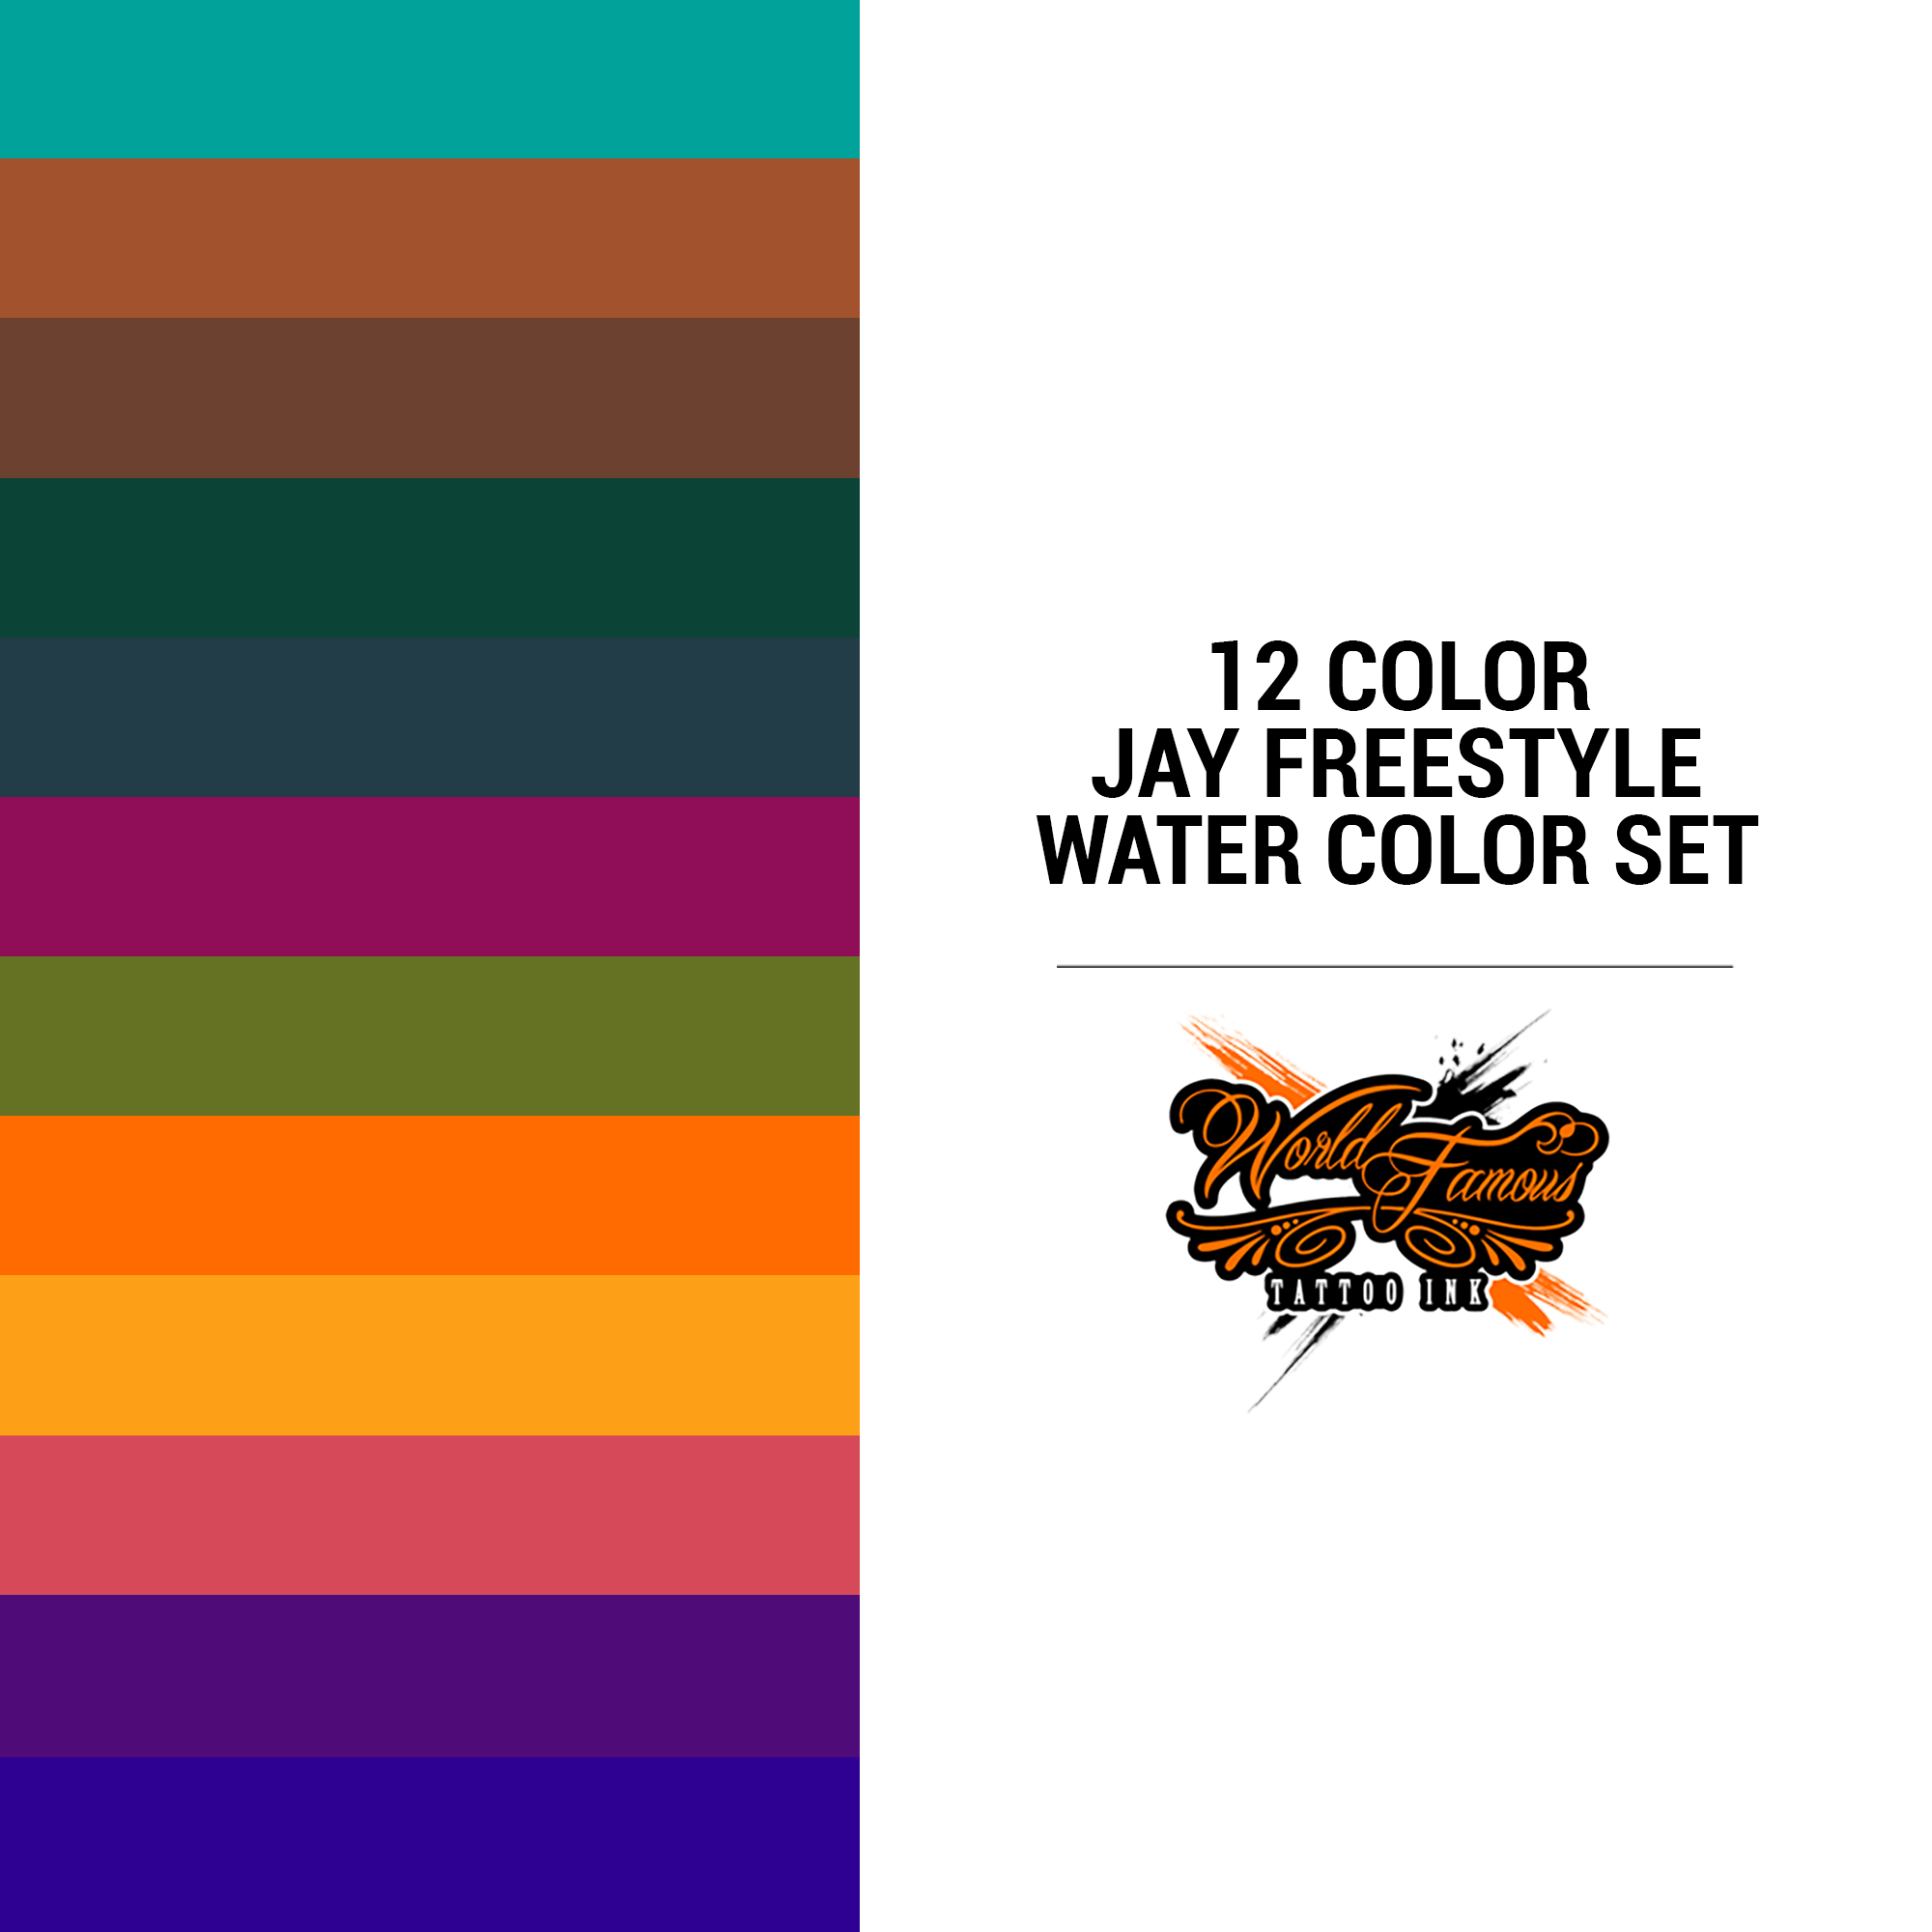 WF Jay Freestyle Water Color Set